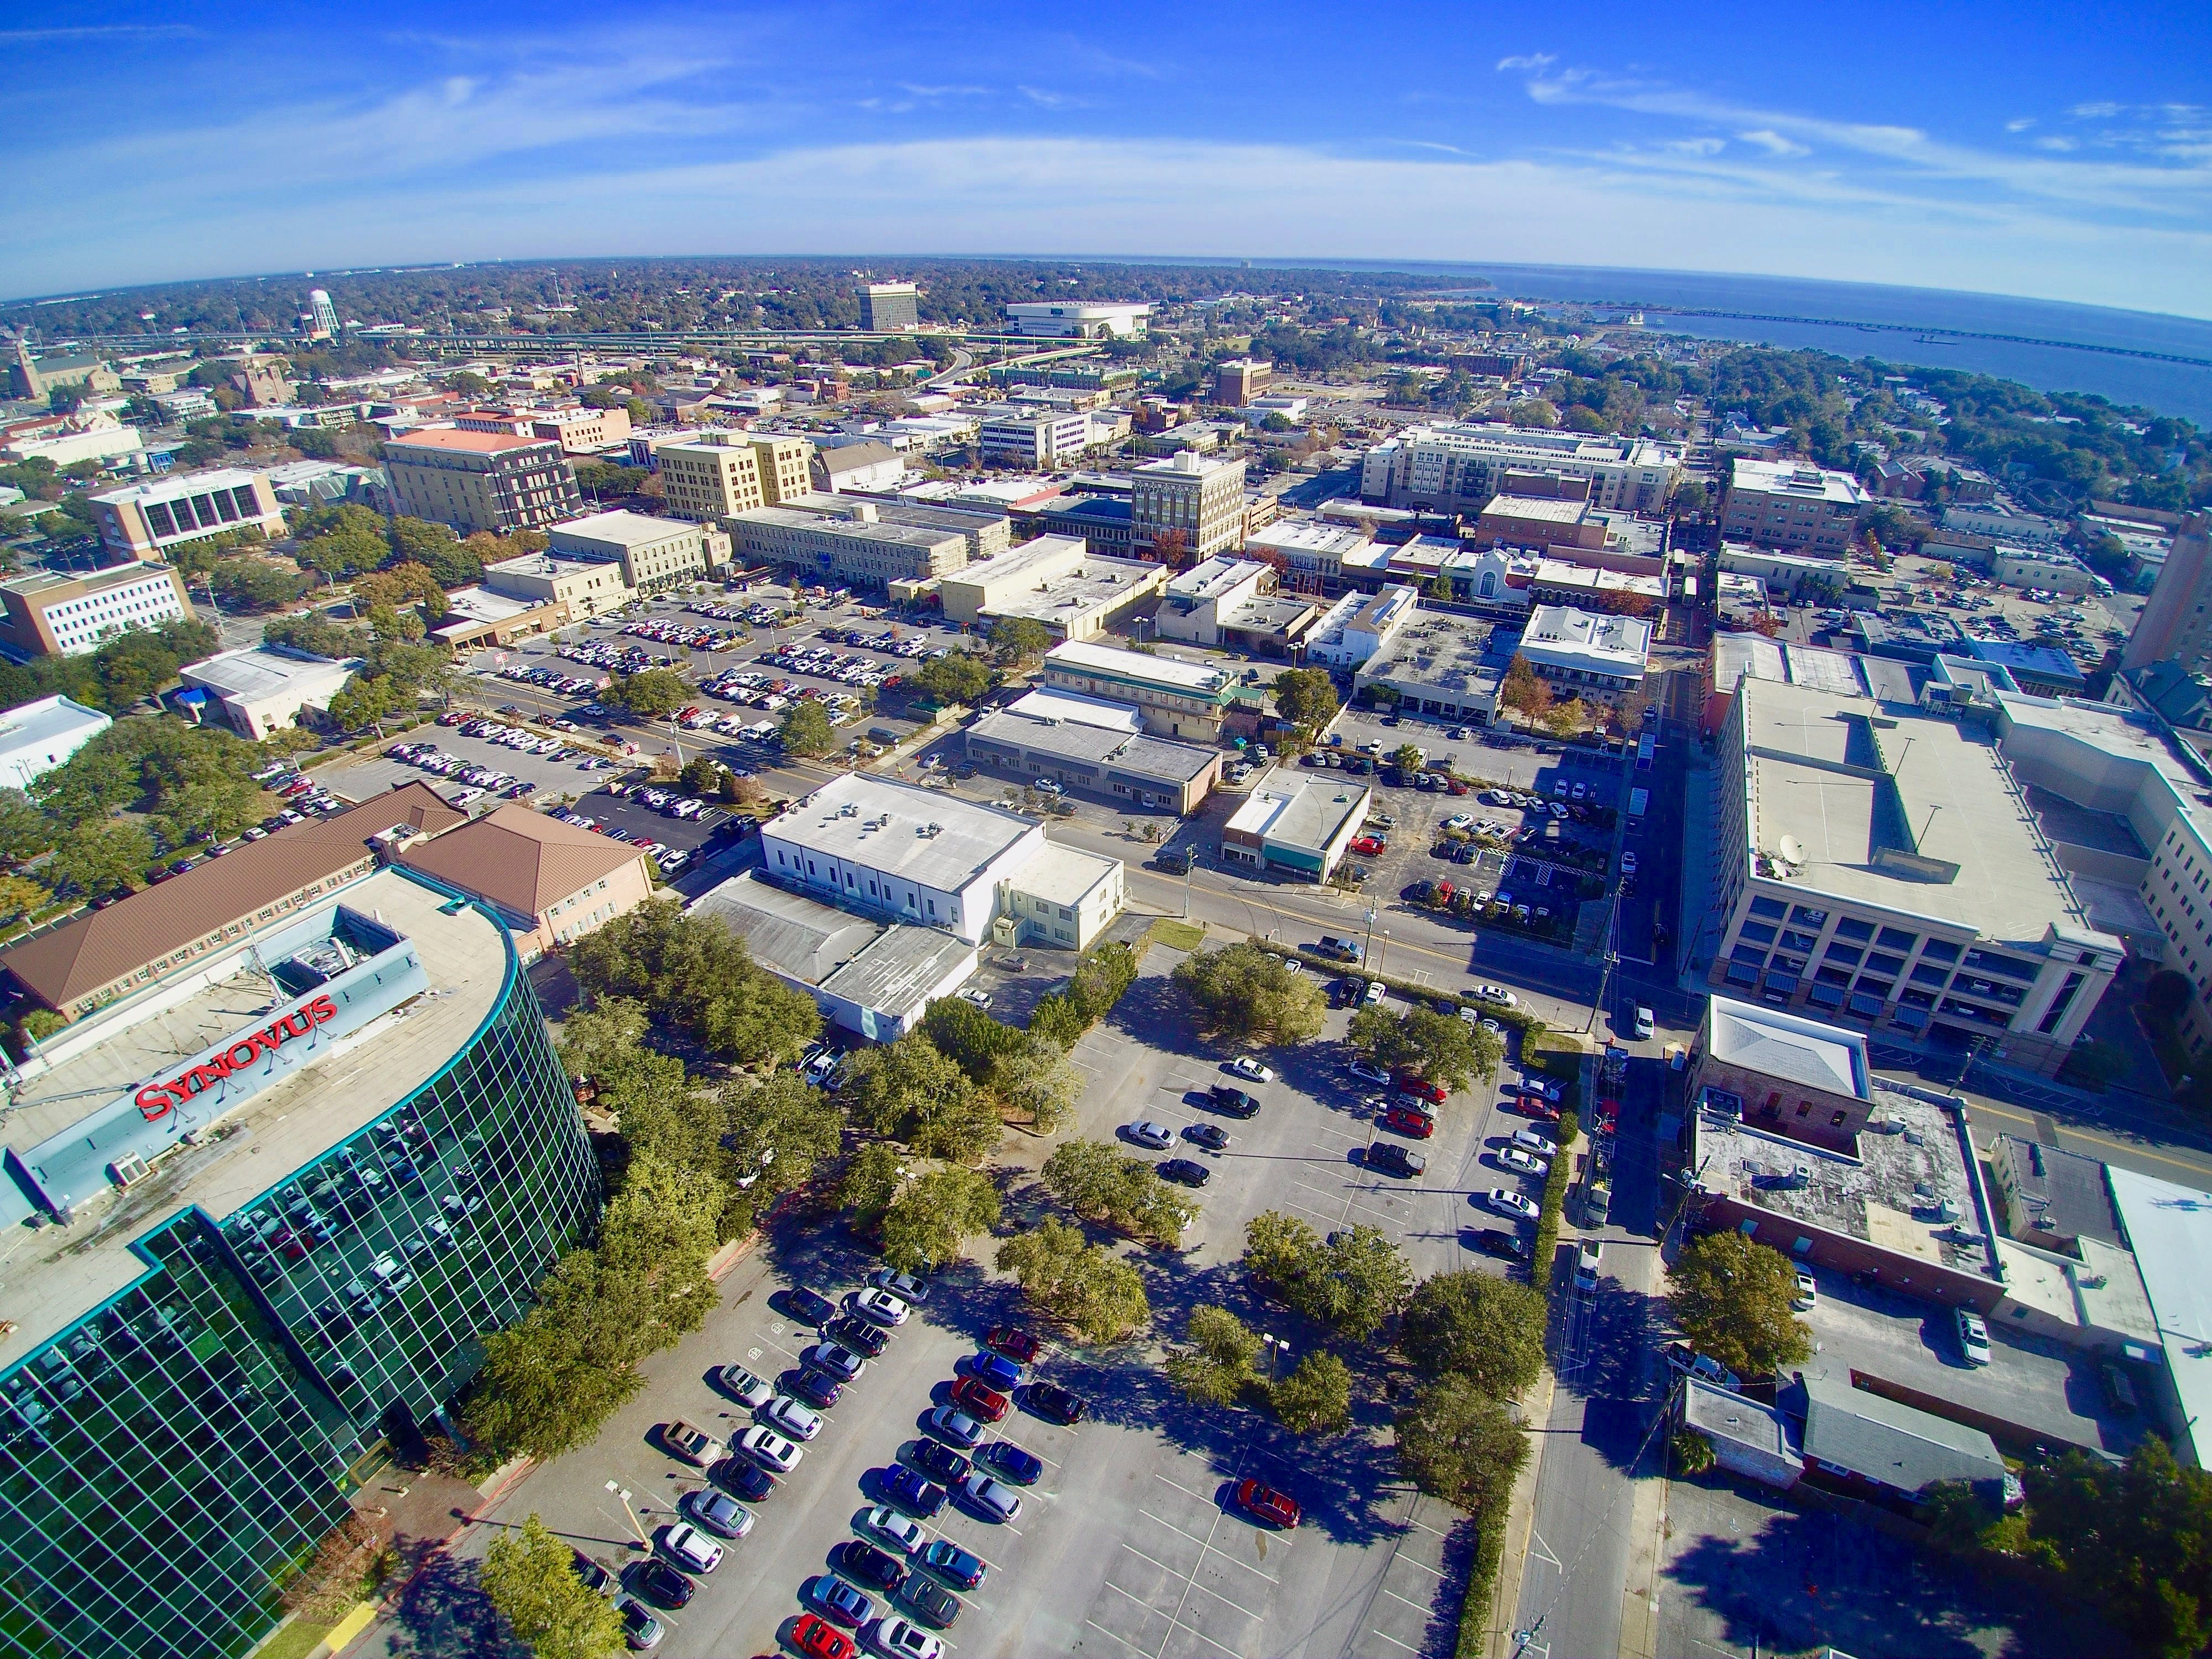 Aerial shots of downtown Pensacola.